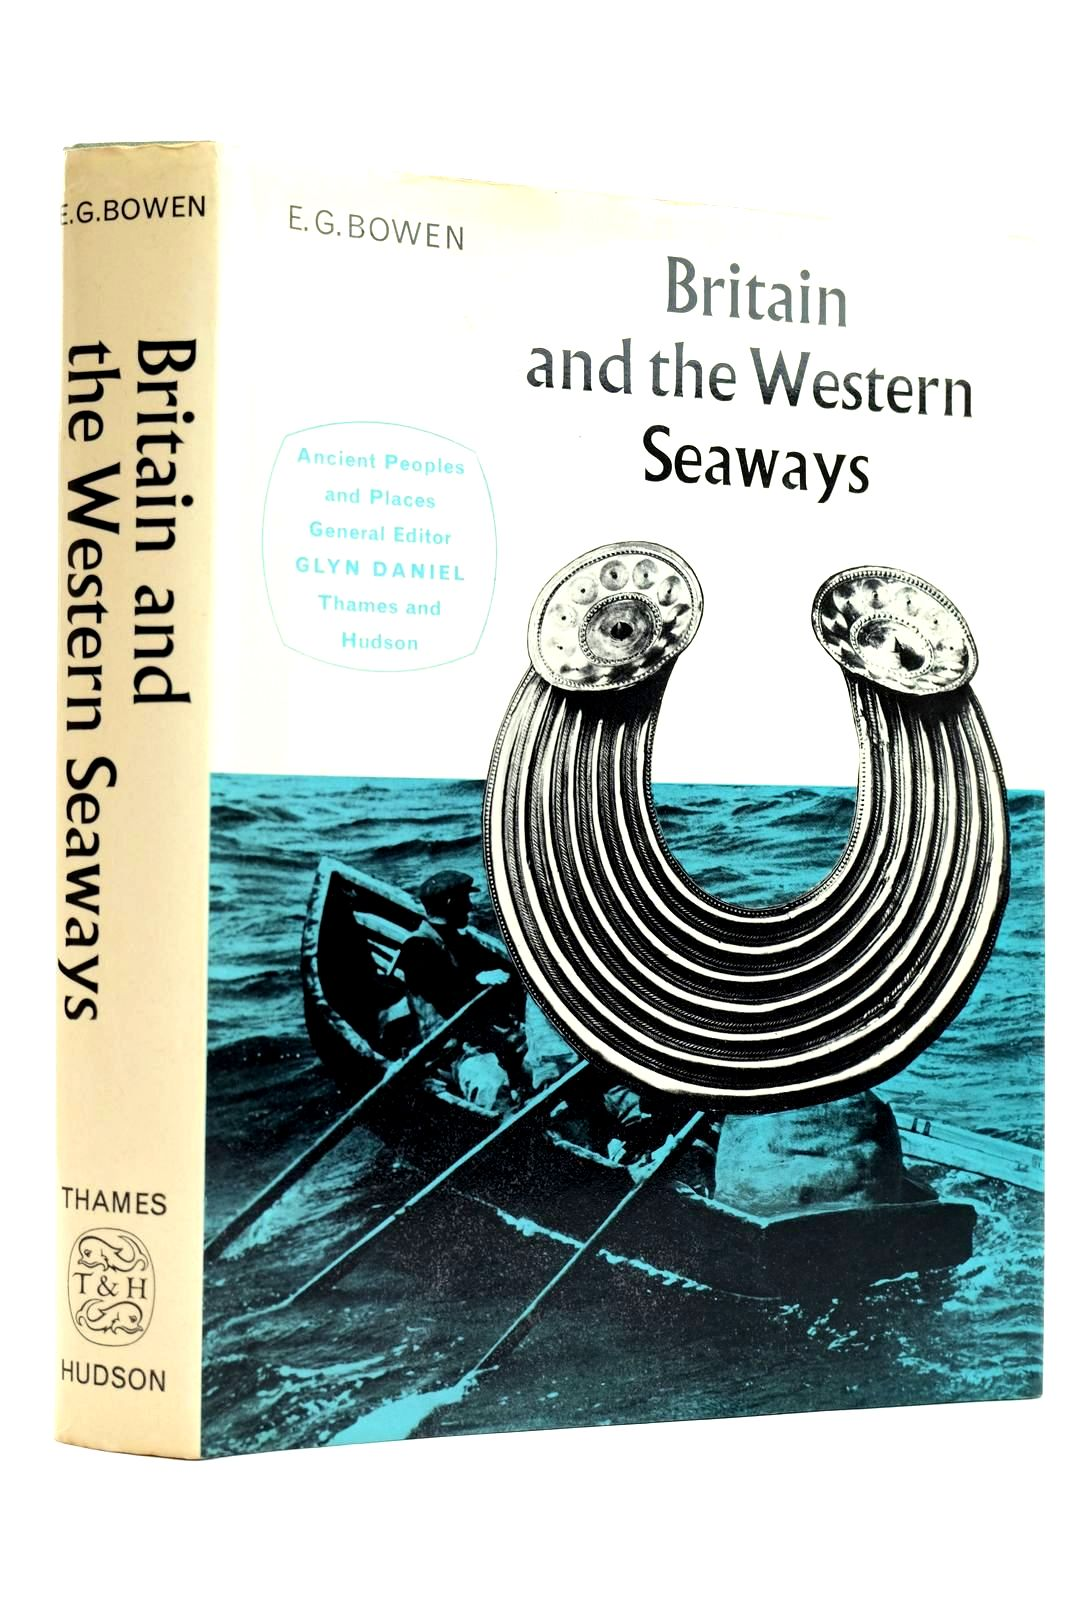 Photo of BRITAIN AND THE WESTERN SEAWAYS written by Bowen, E.G. Daniel, Glyn published by Thames and Hudson (STOCK CODE: 2131985)  for sale by Stella & Rose's Books